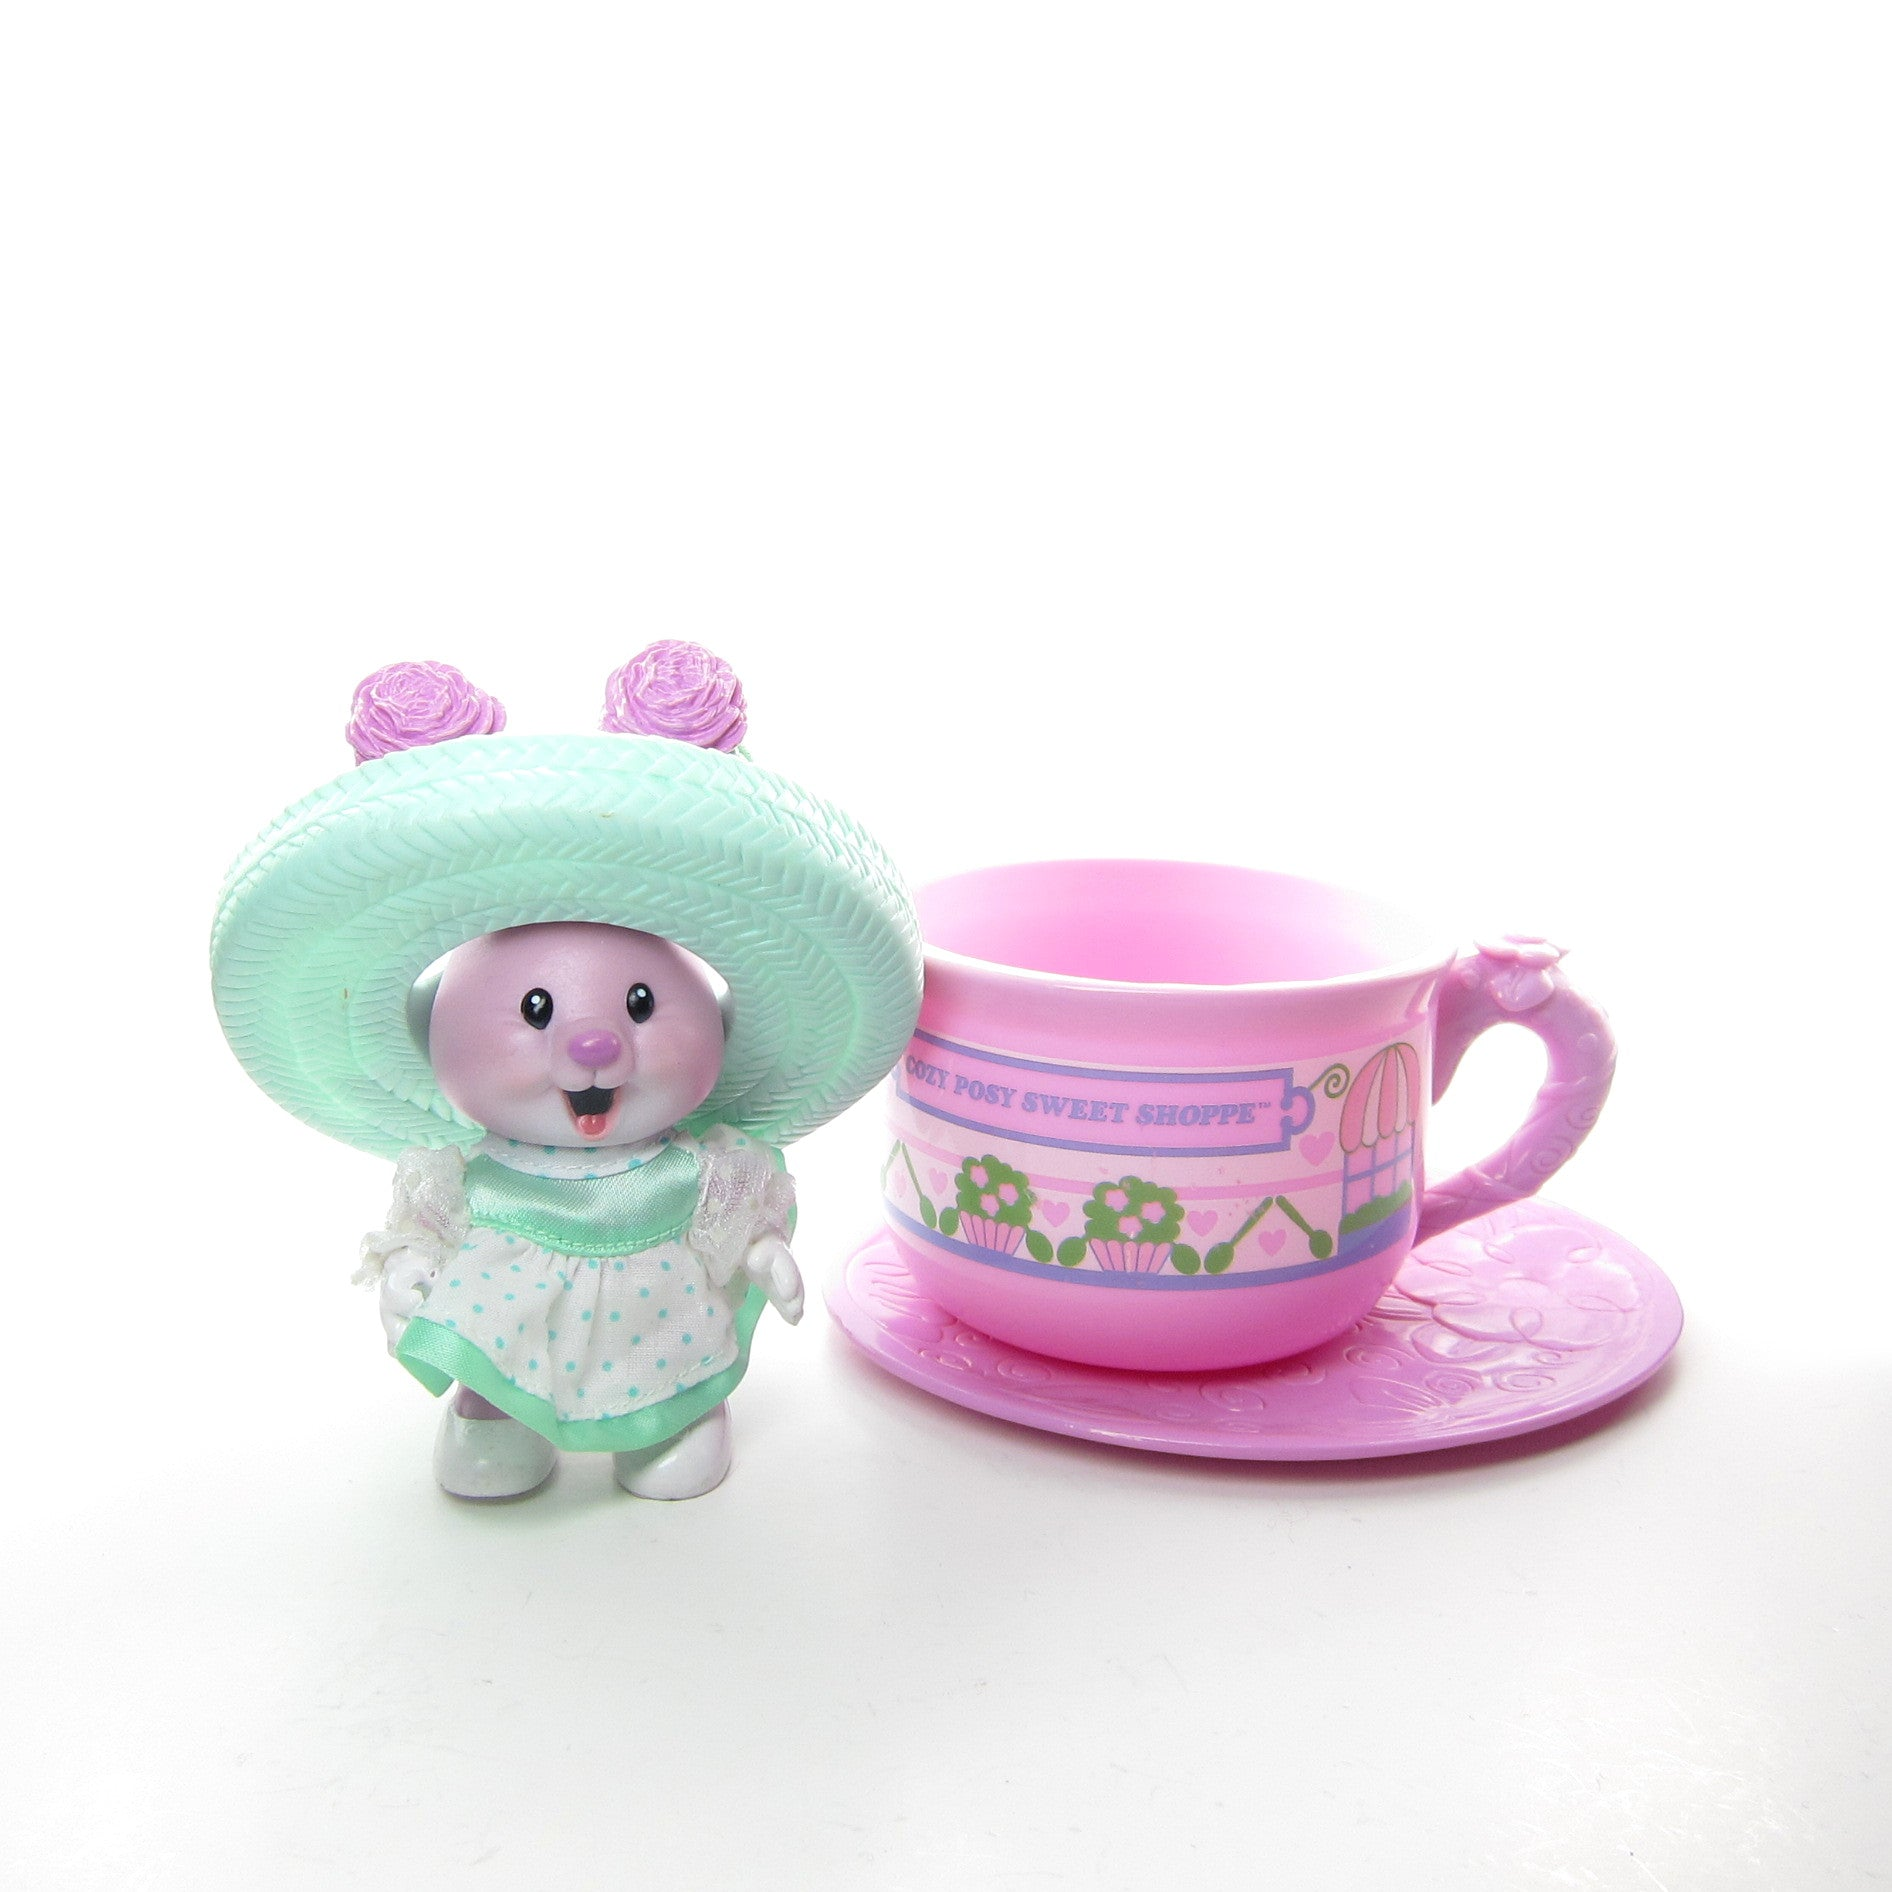 Carnation Mint & The Cozy Posy Sweet Shoppe Tea Bunnies toy